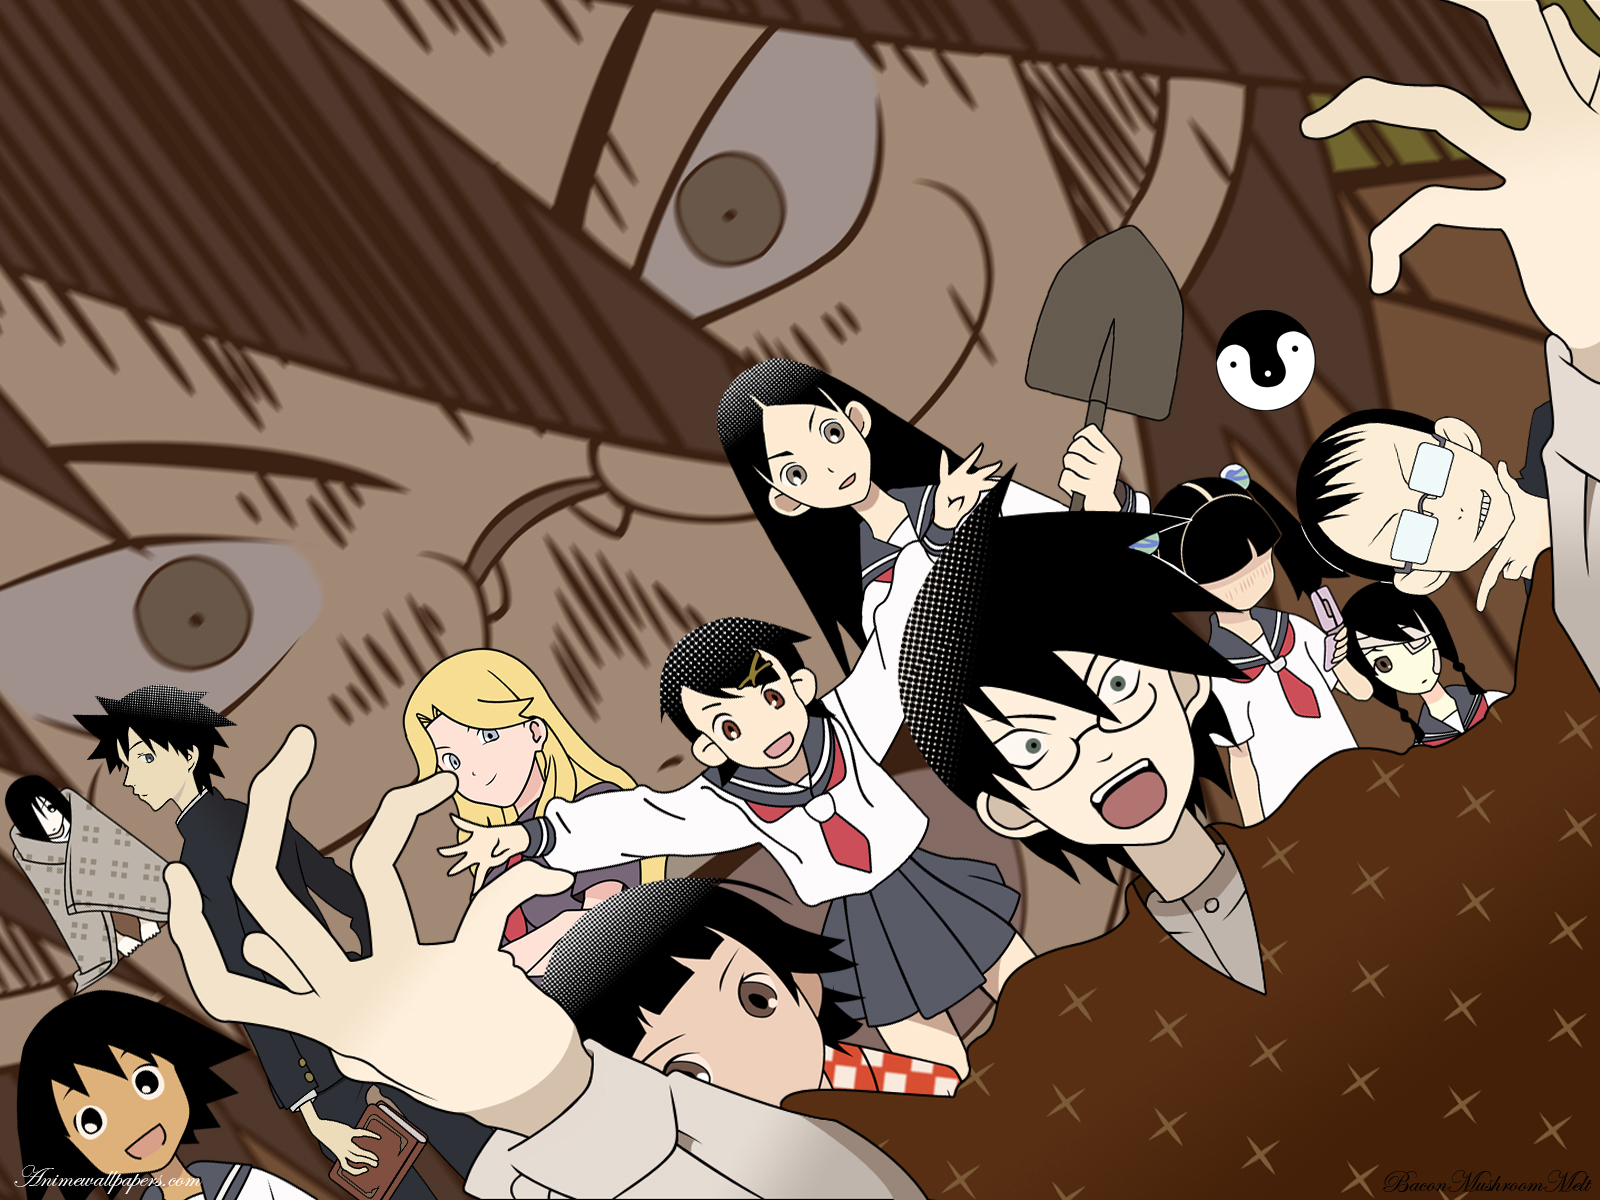 Sayonara Zetsubou Sensei Anime Wallpaper # 1